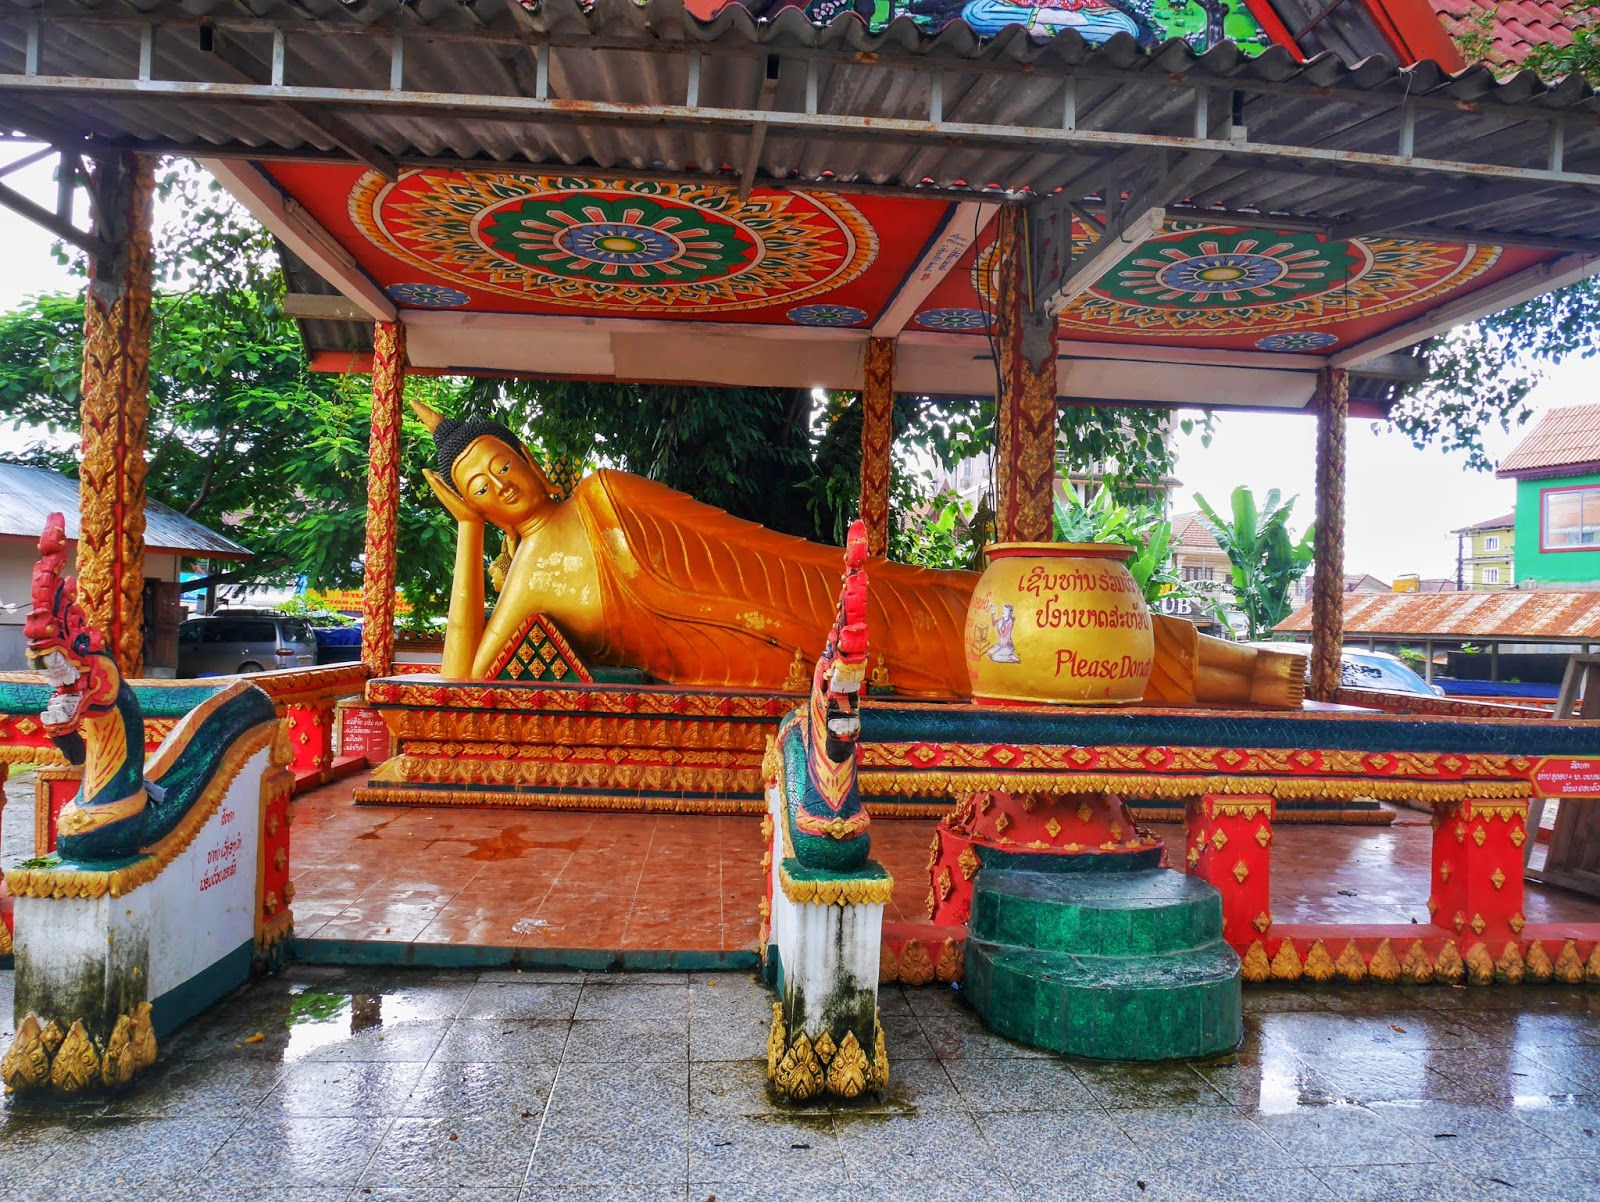 a reclining Buddha statue at a Buddhist temple in Vang Vieng, Laos